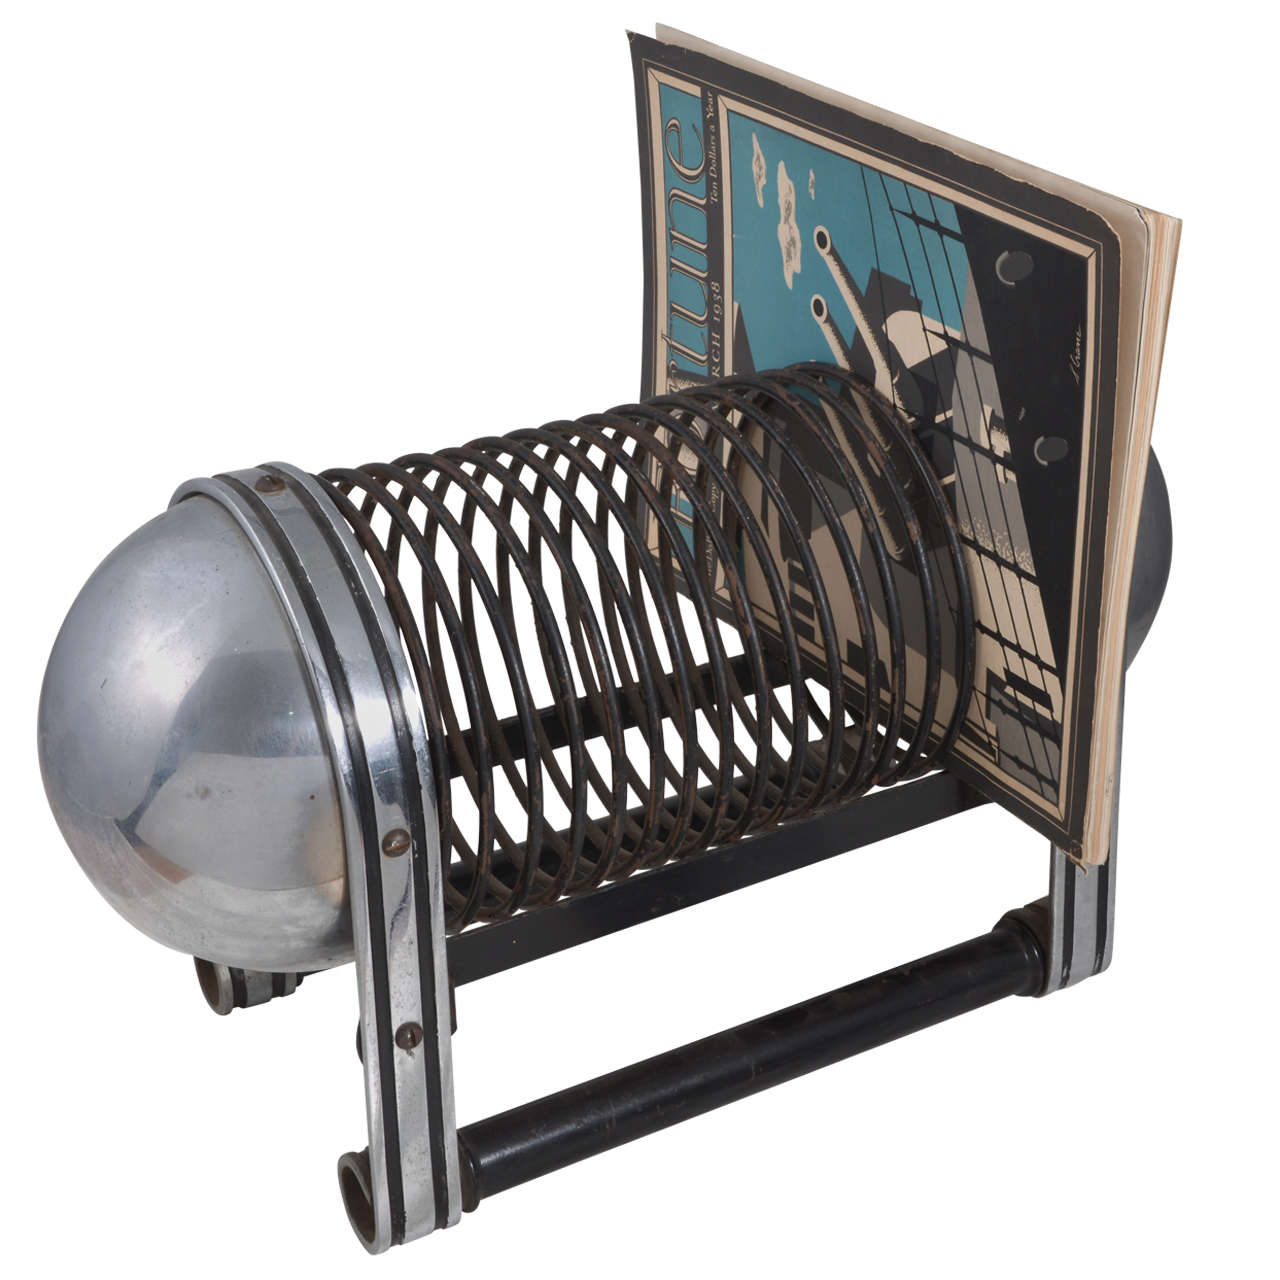 Mckay - Craft Machine Age Art Deco Magazine Rack By Carpenter